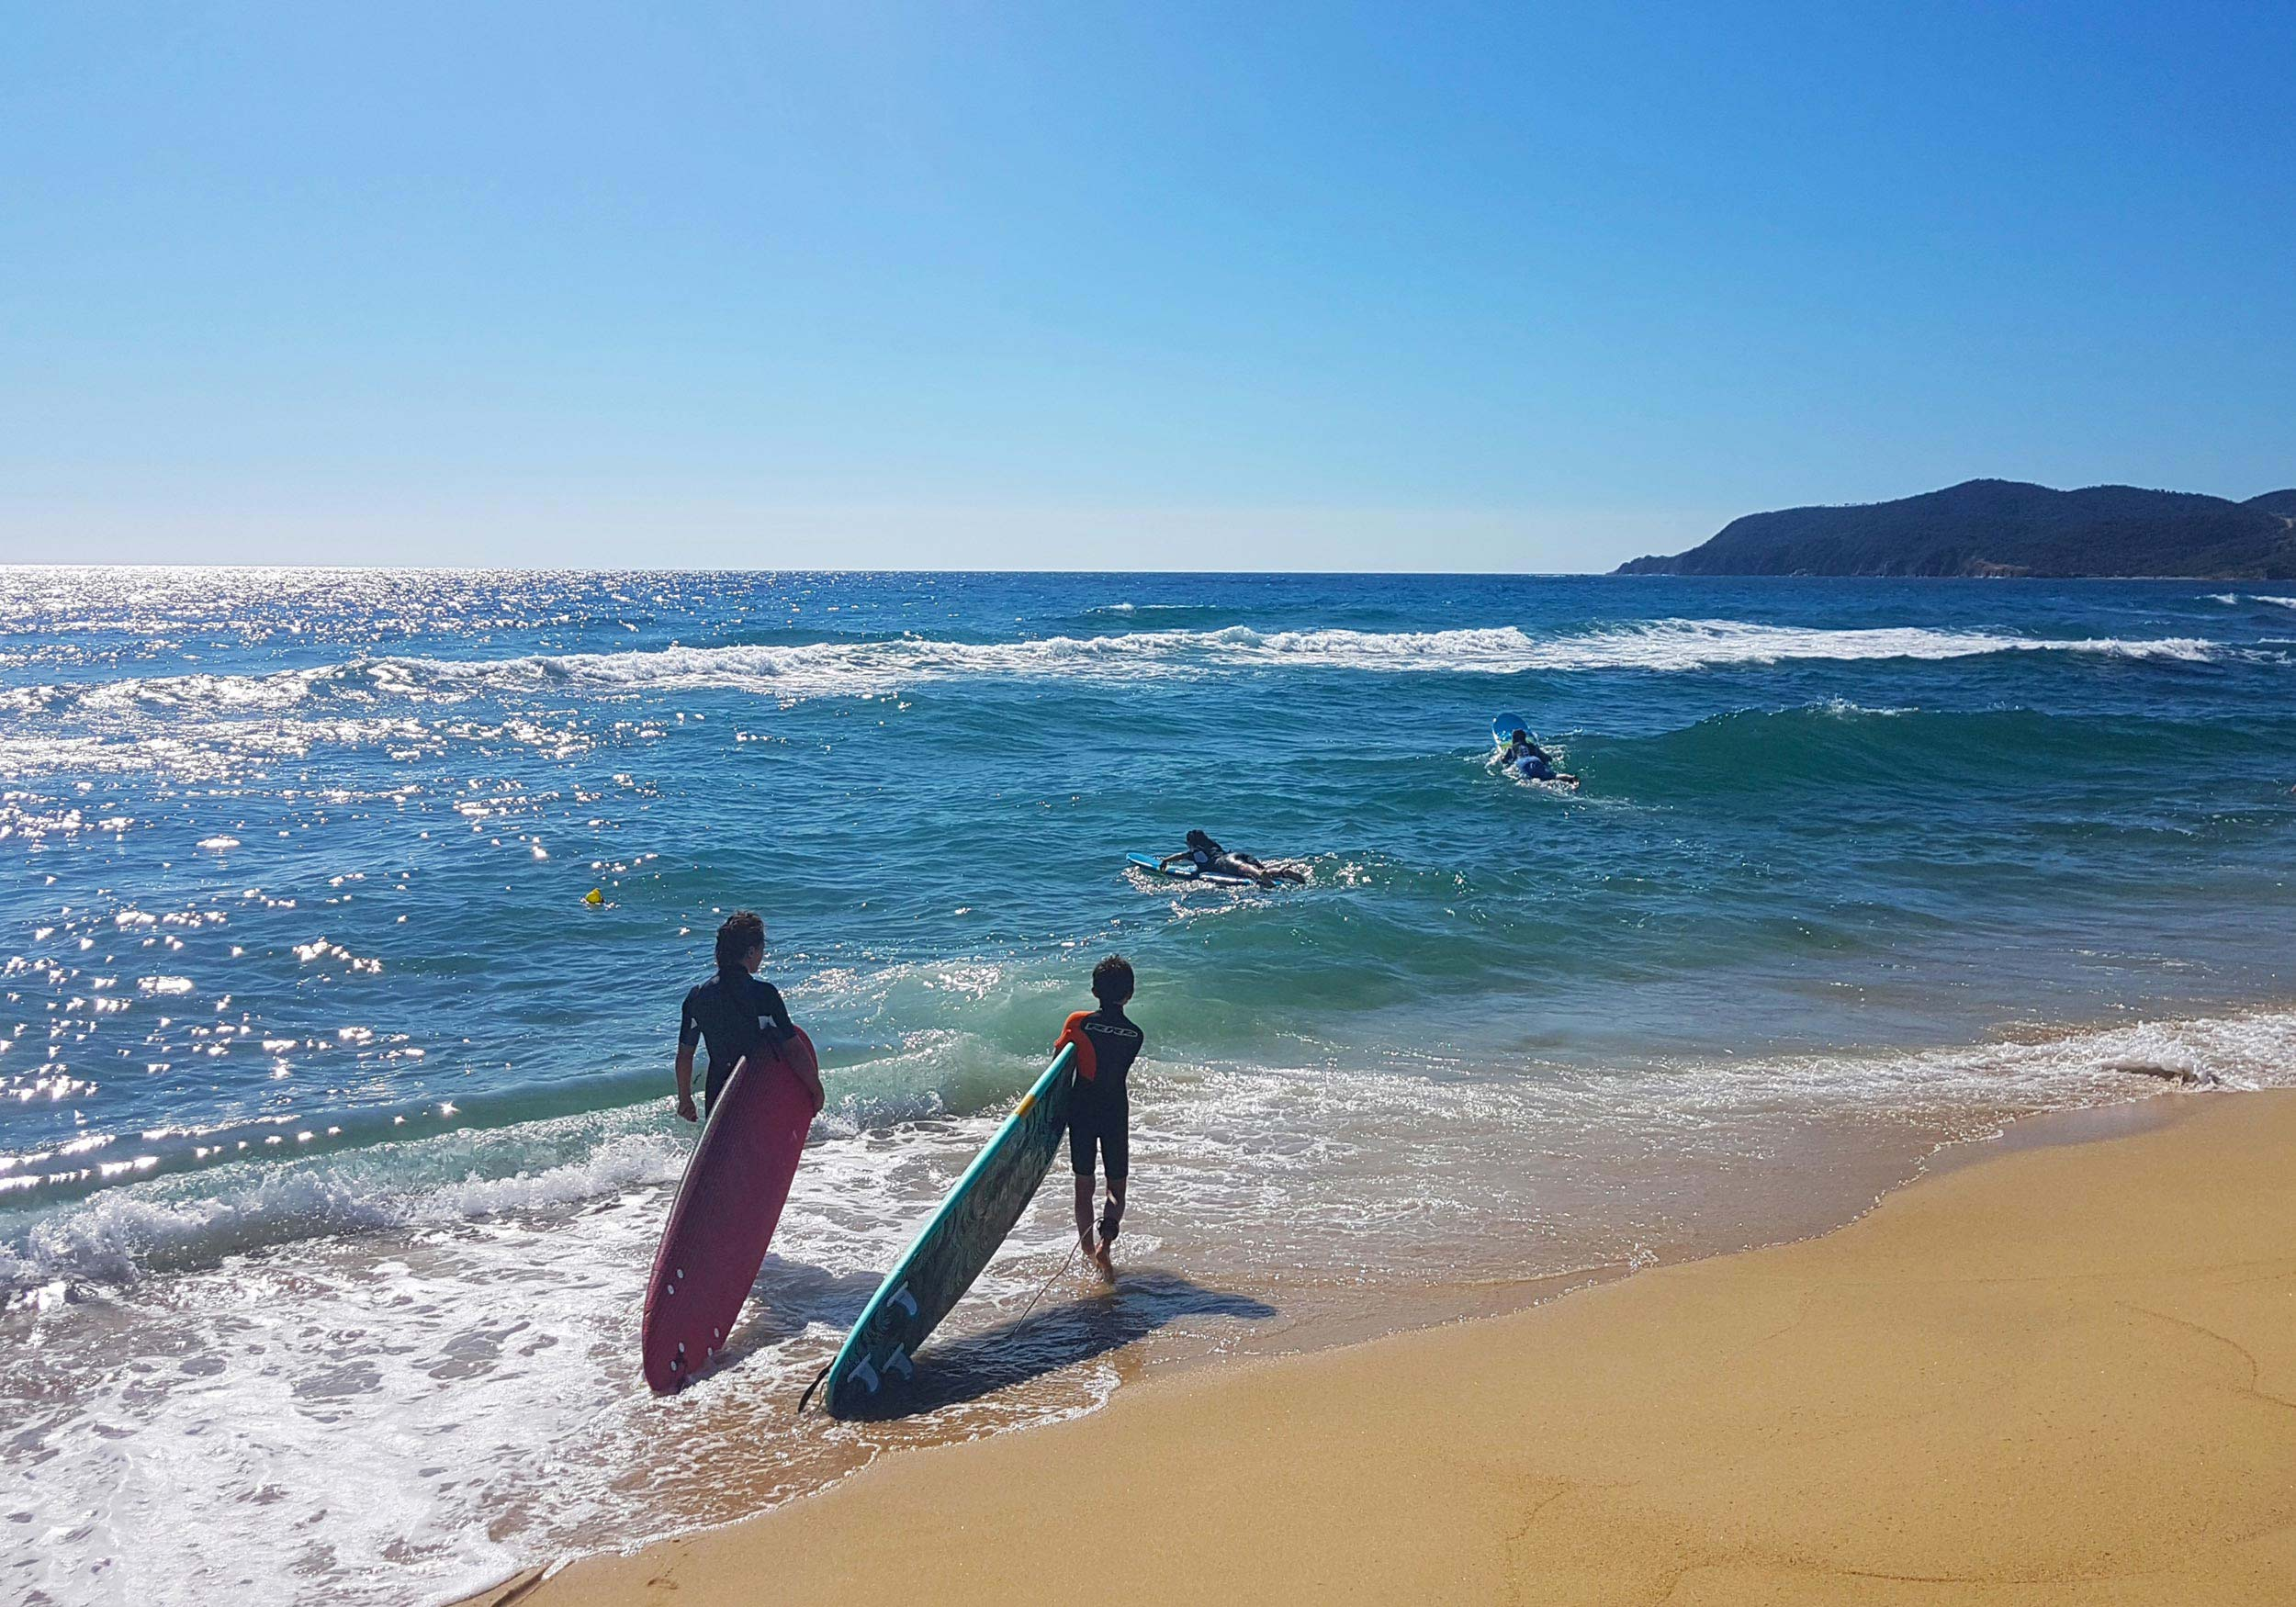 Surfers heading to ride the waves